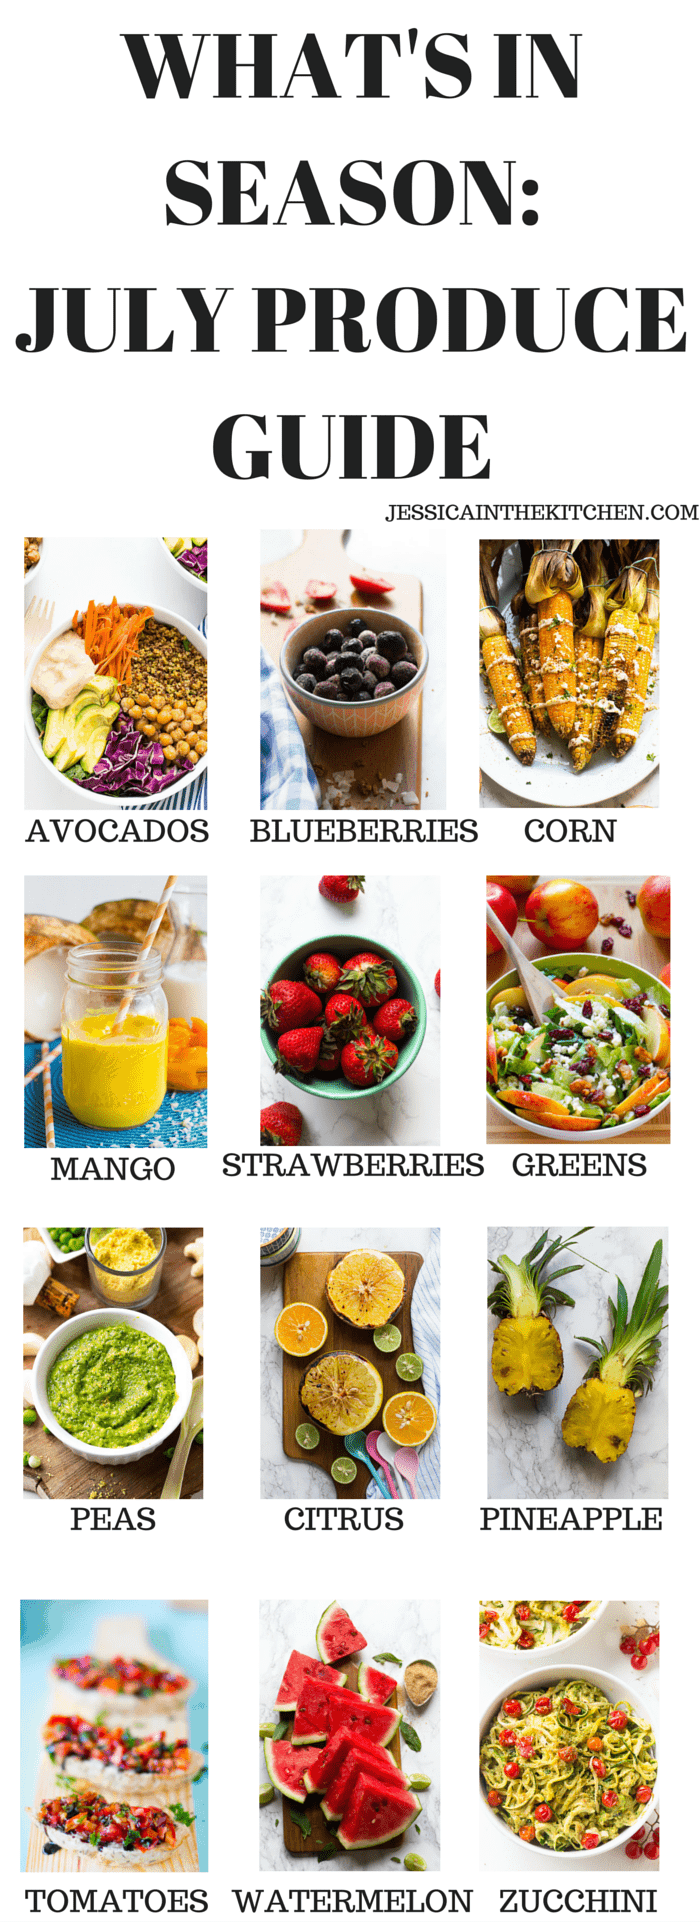 What's in Season: July Produce Guide. Here's a list of what you should cook this July based on what produce is in season for fresh, delicious and healthy recipes!